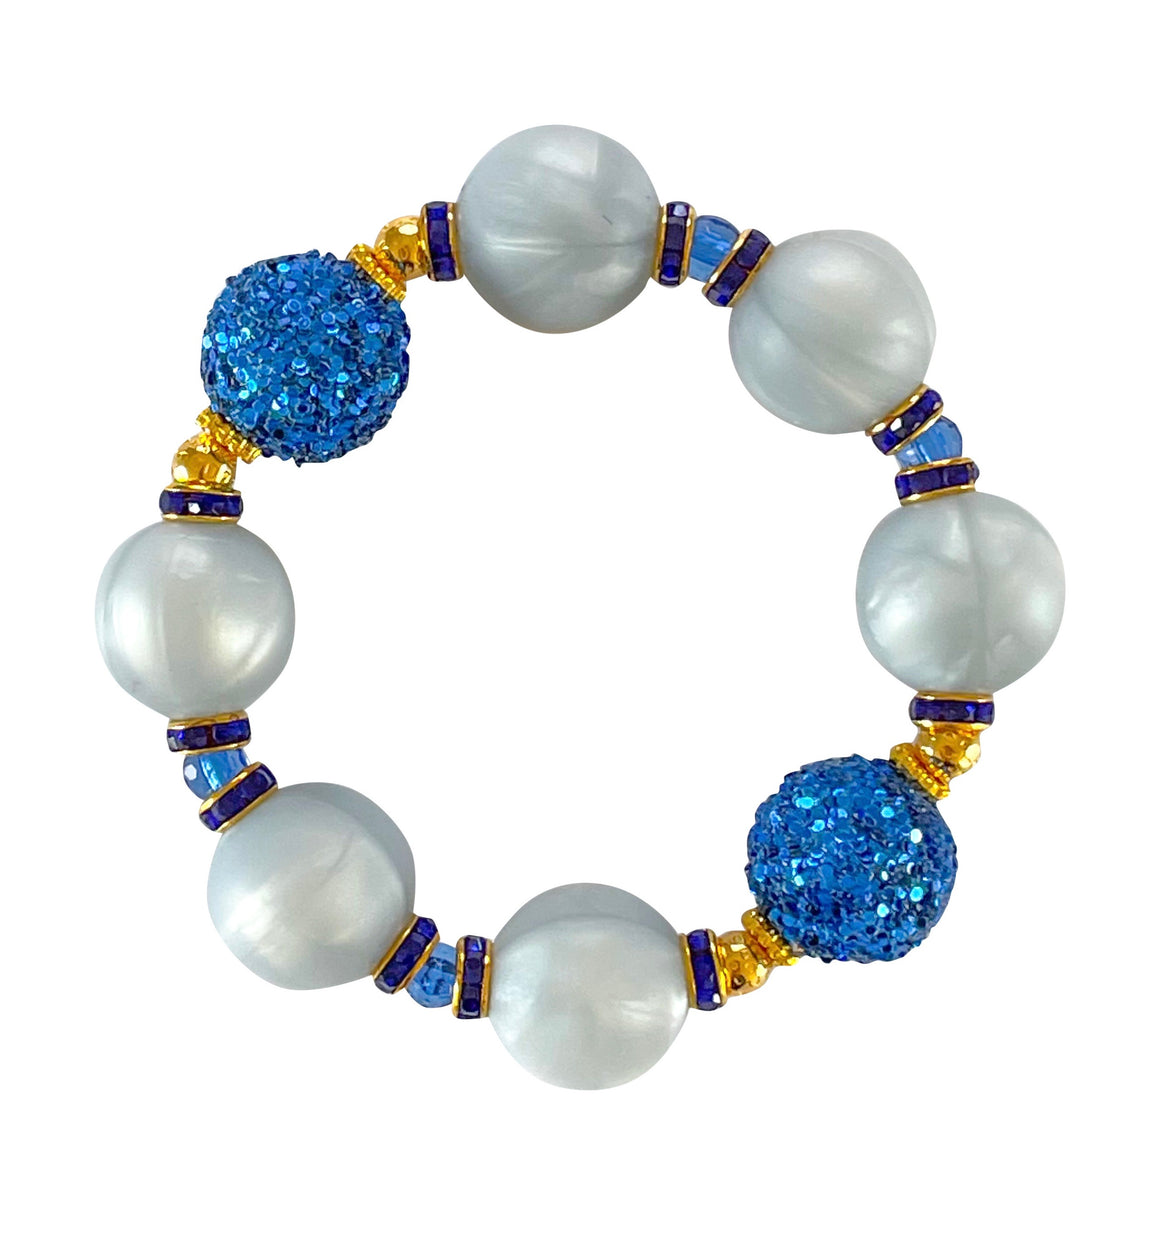 SPRING STATEMENT BRACELET IN LIGHT AND ROYAL BLUE